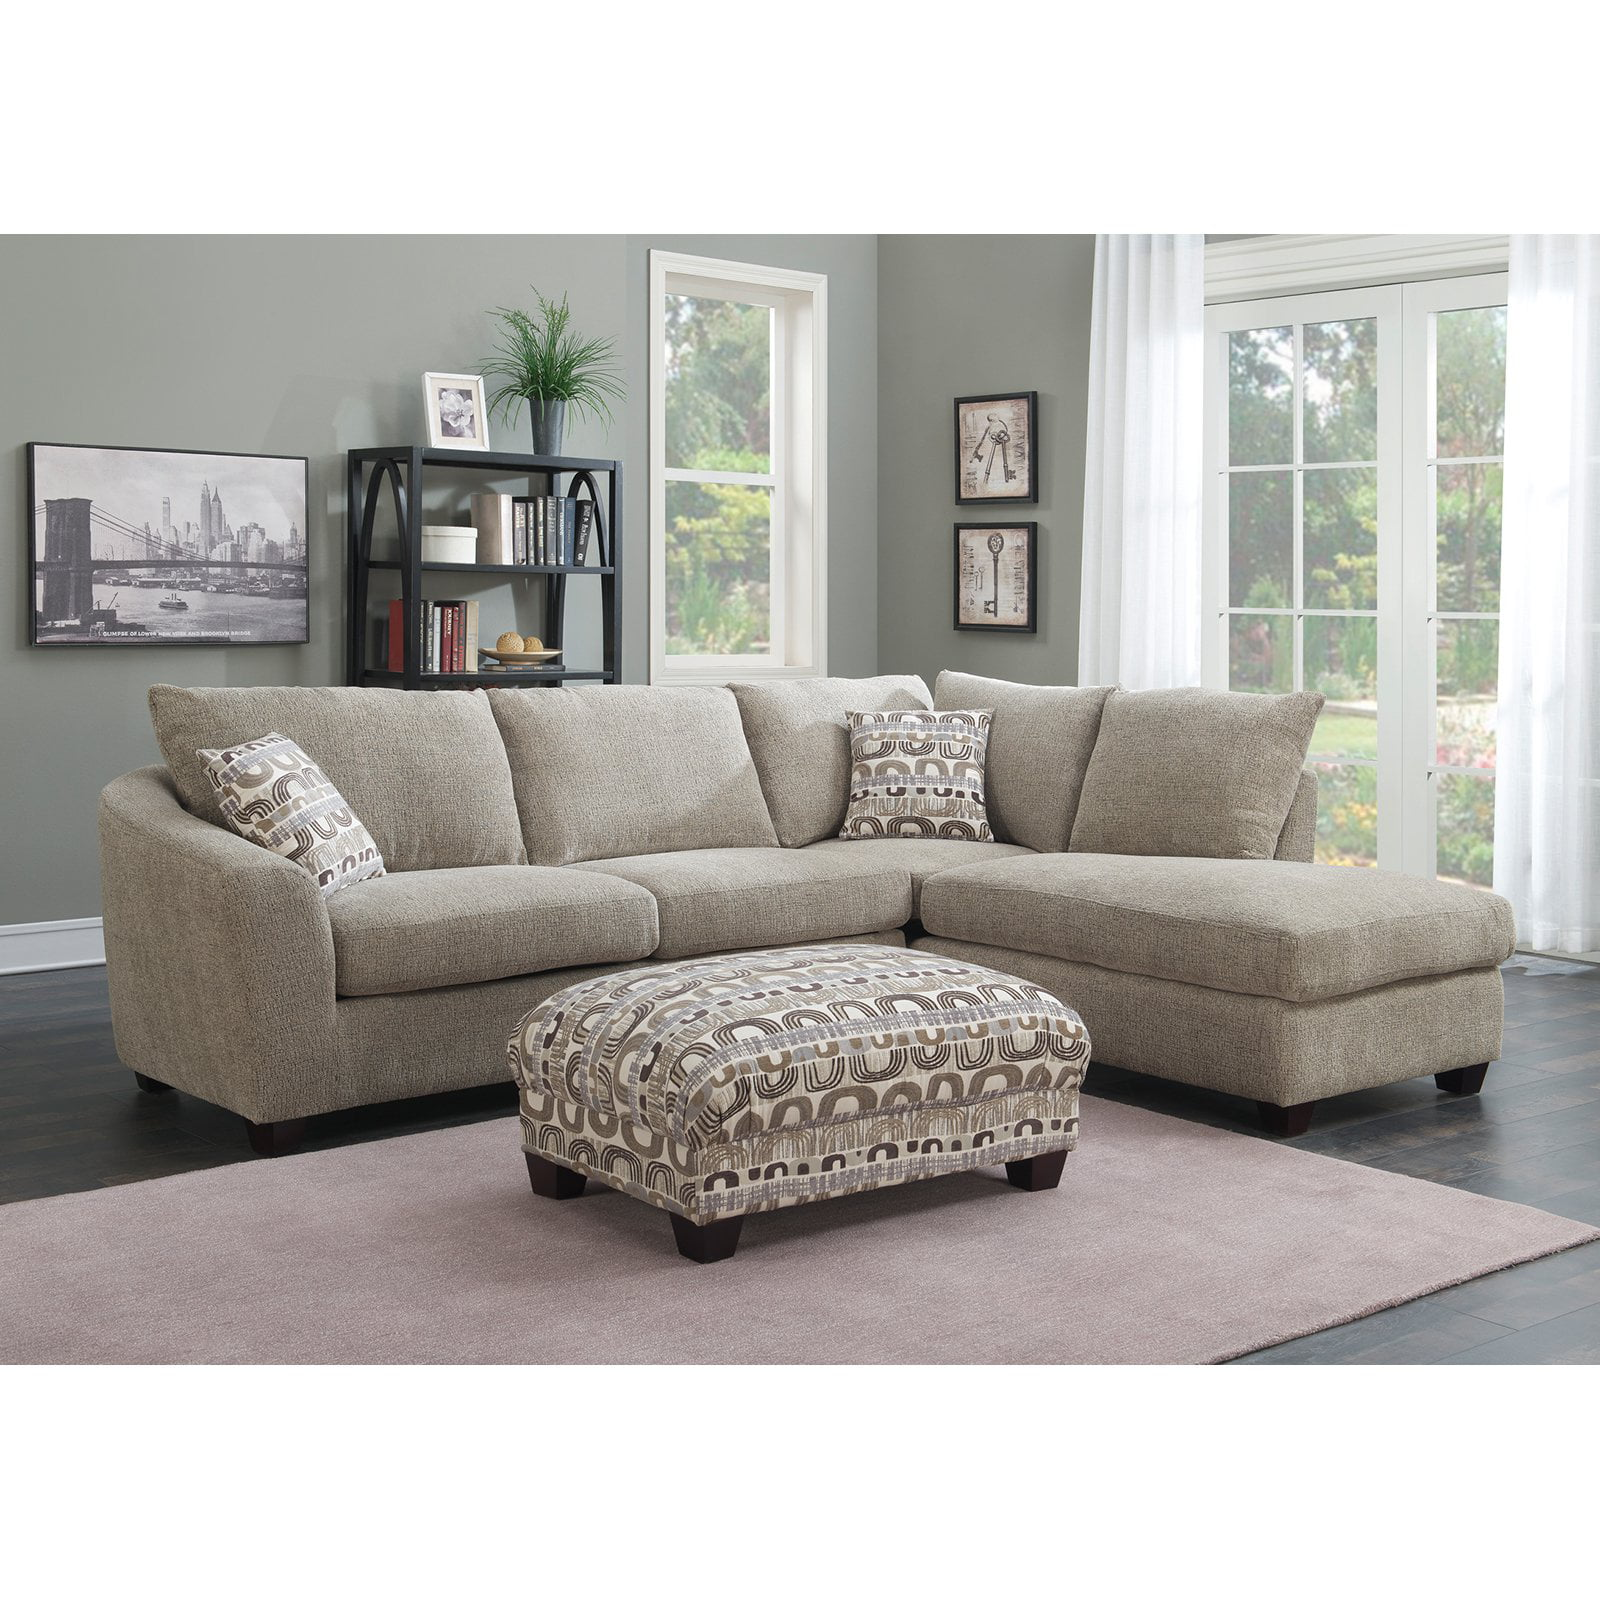 Emerald Home Urbana 2 Piece Sectional Sofa with Chaise Walmart